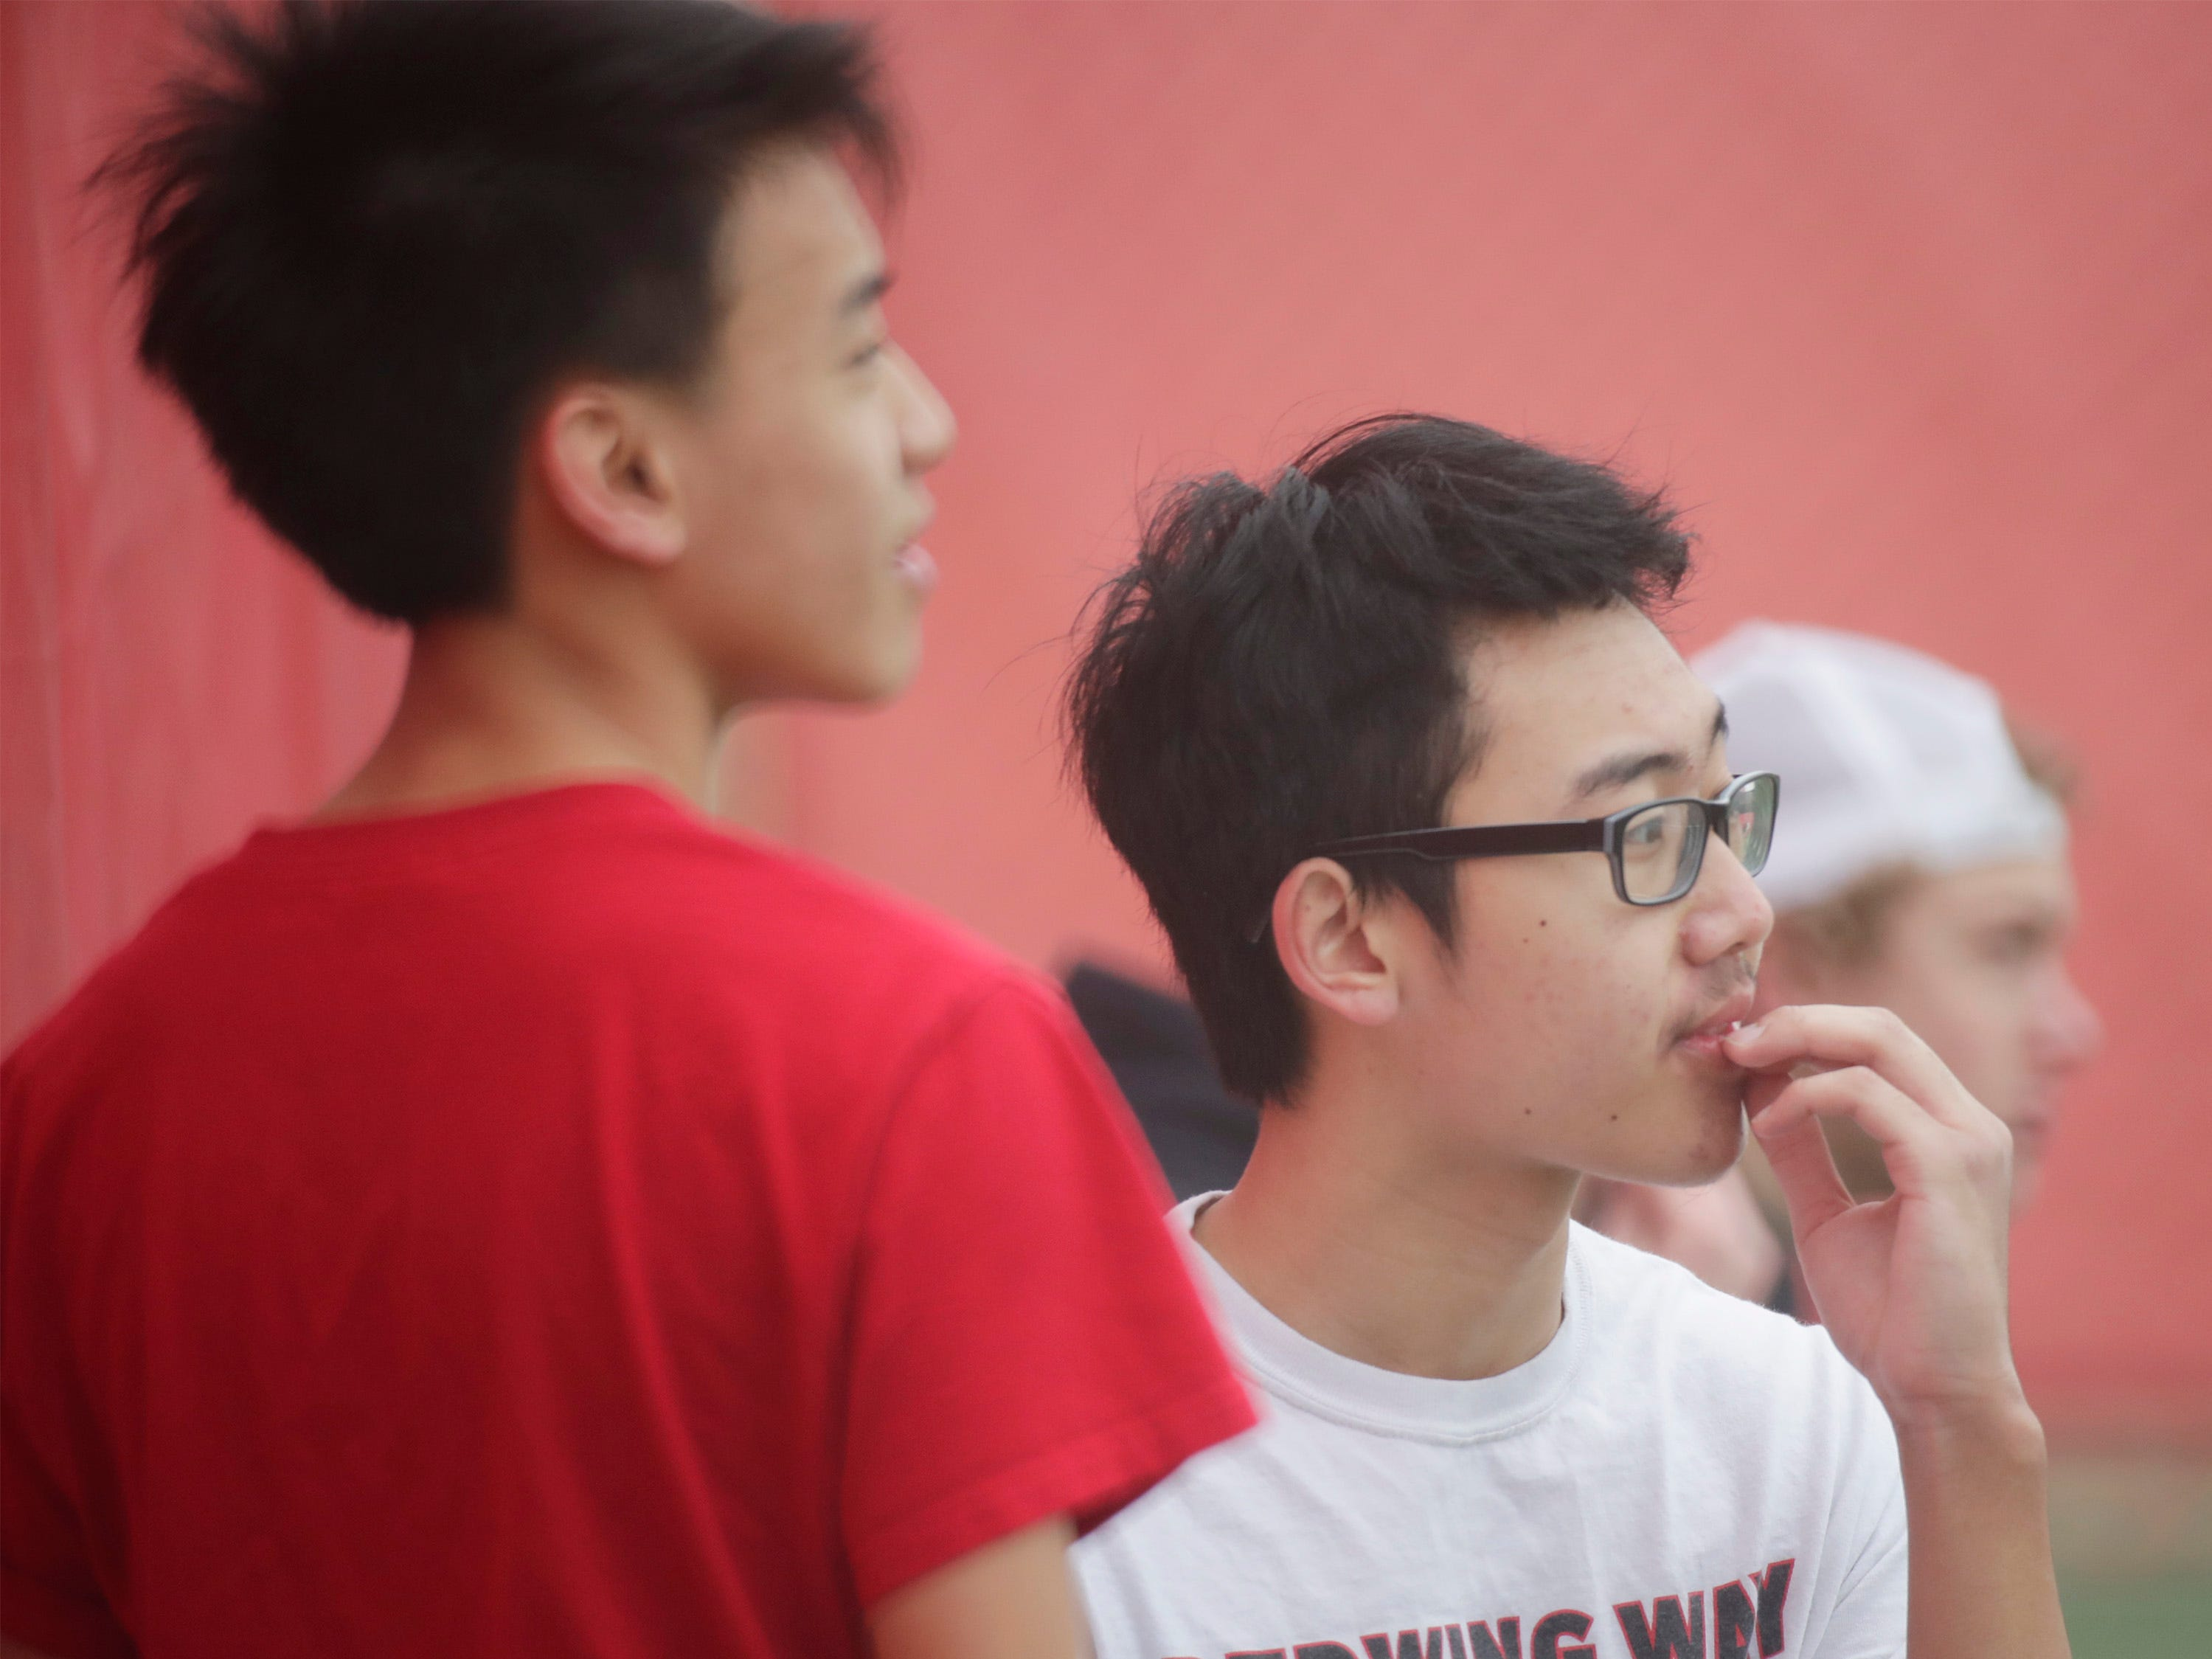 Sheboygan South's No. 1 doubles Kongmeng Yang, left, and Henry Lee analyze the situation against Port Washington between sets, Saturday, April 6, 2019, in Sheboygan, Wis.